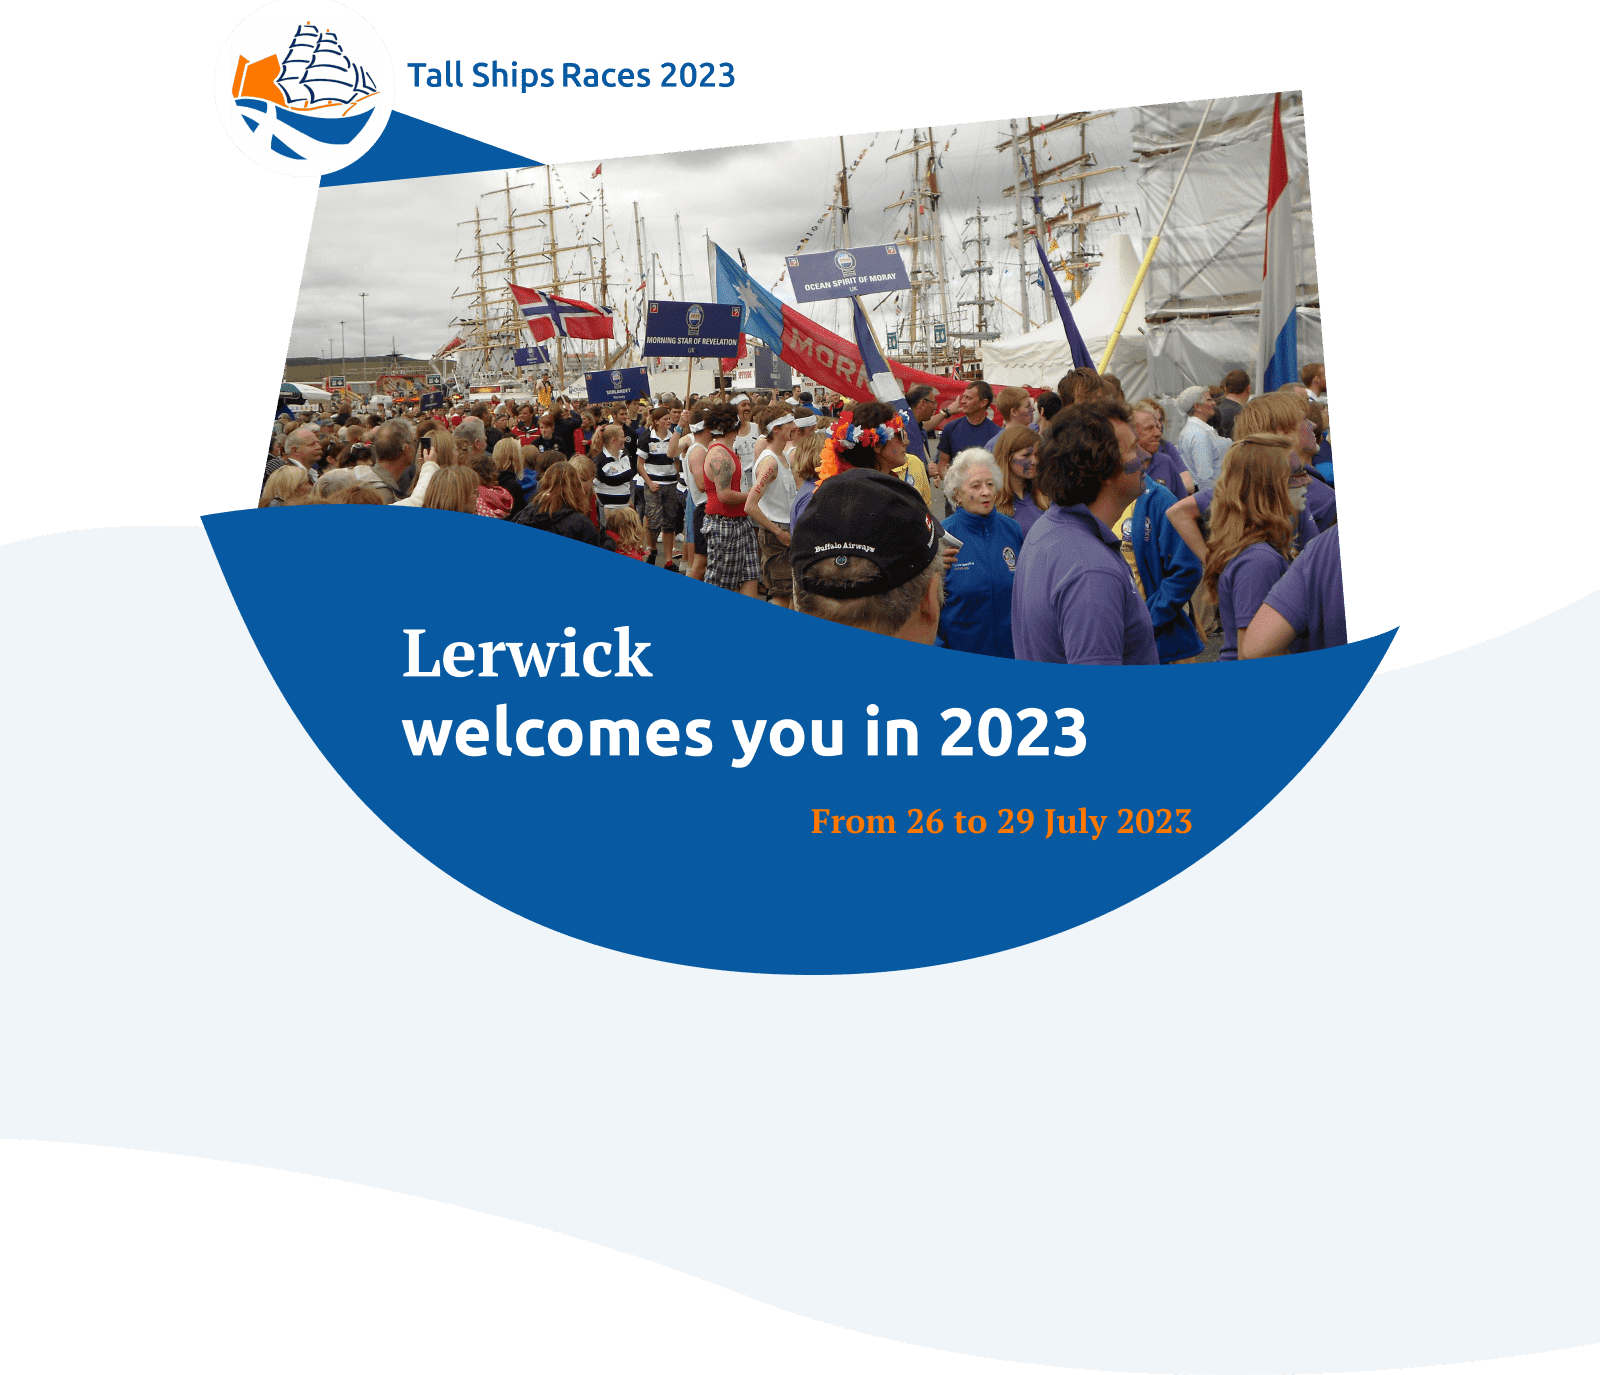 Lerwick welcomes you in 2023, From 26 to 29 July 2023